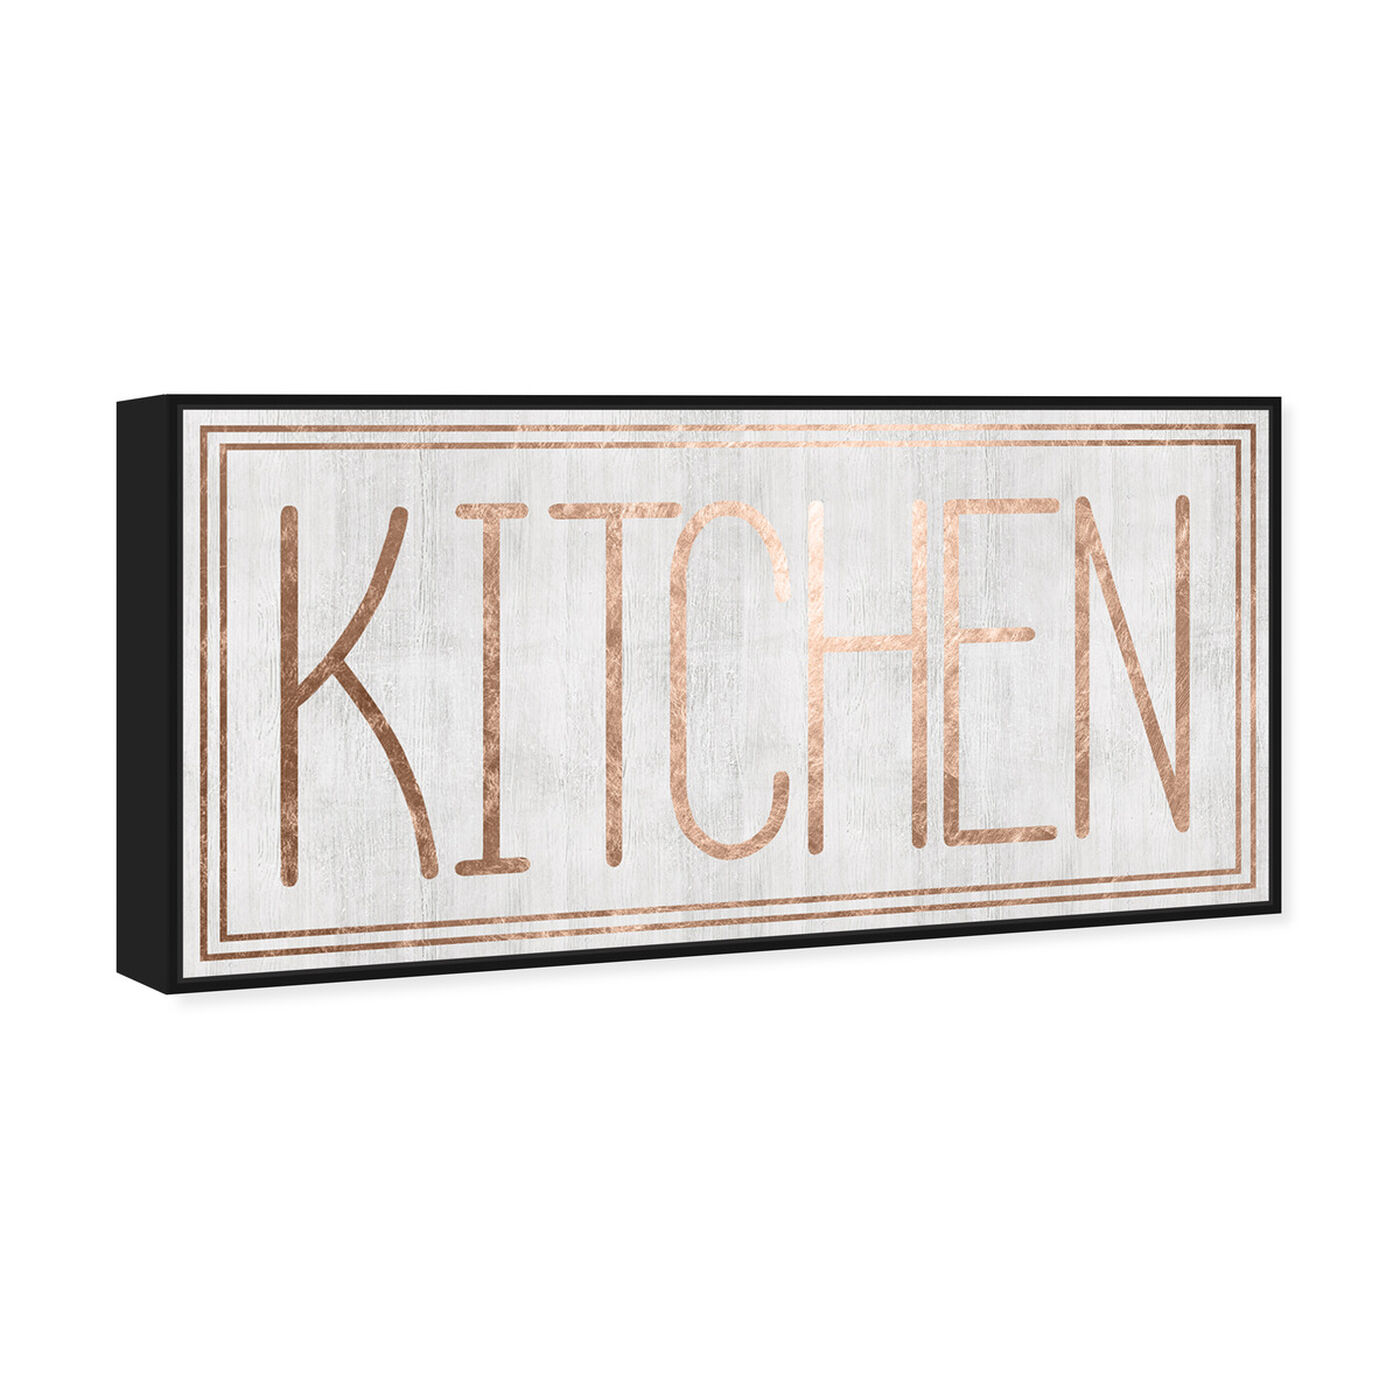 Angled view of Kitchen featuring food and cuisine and kitchen art.